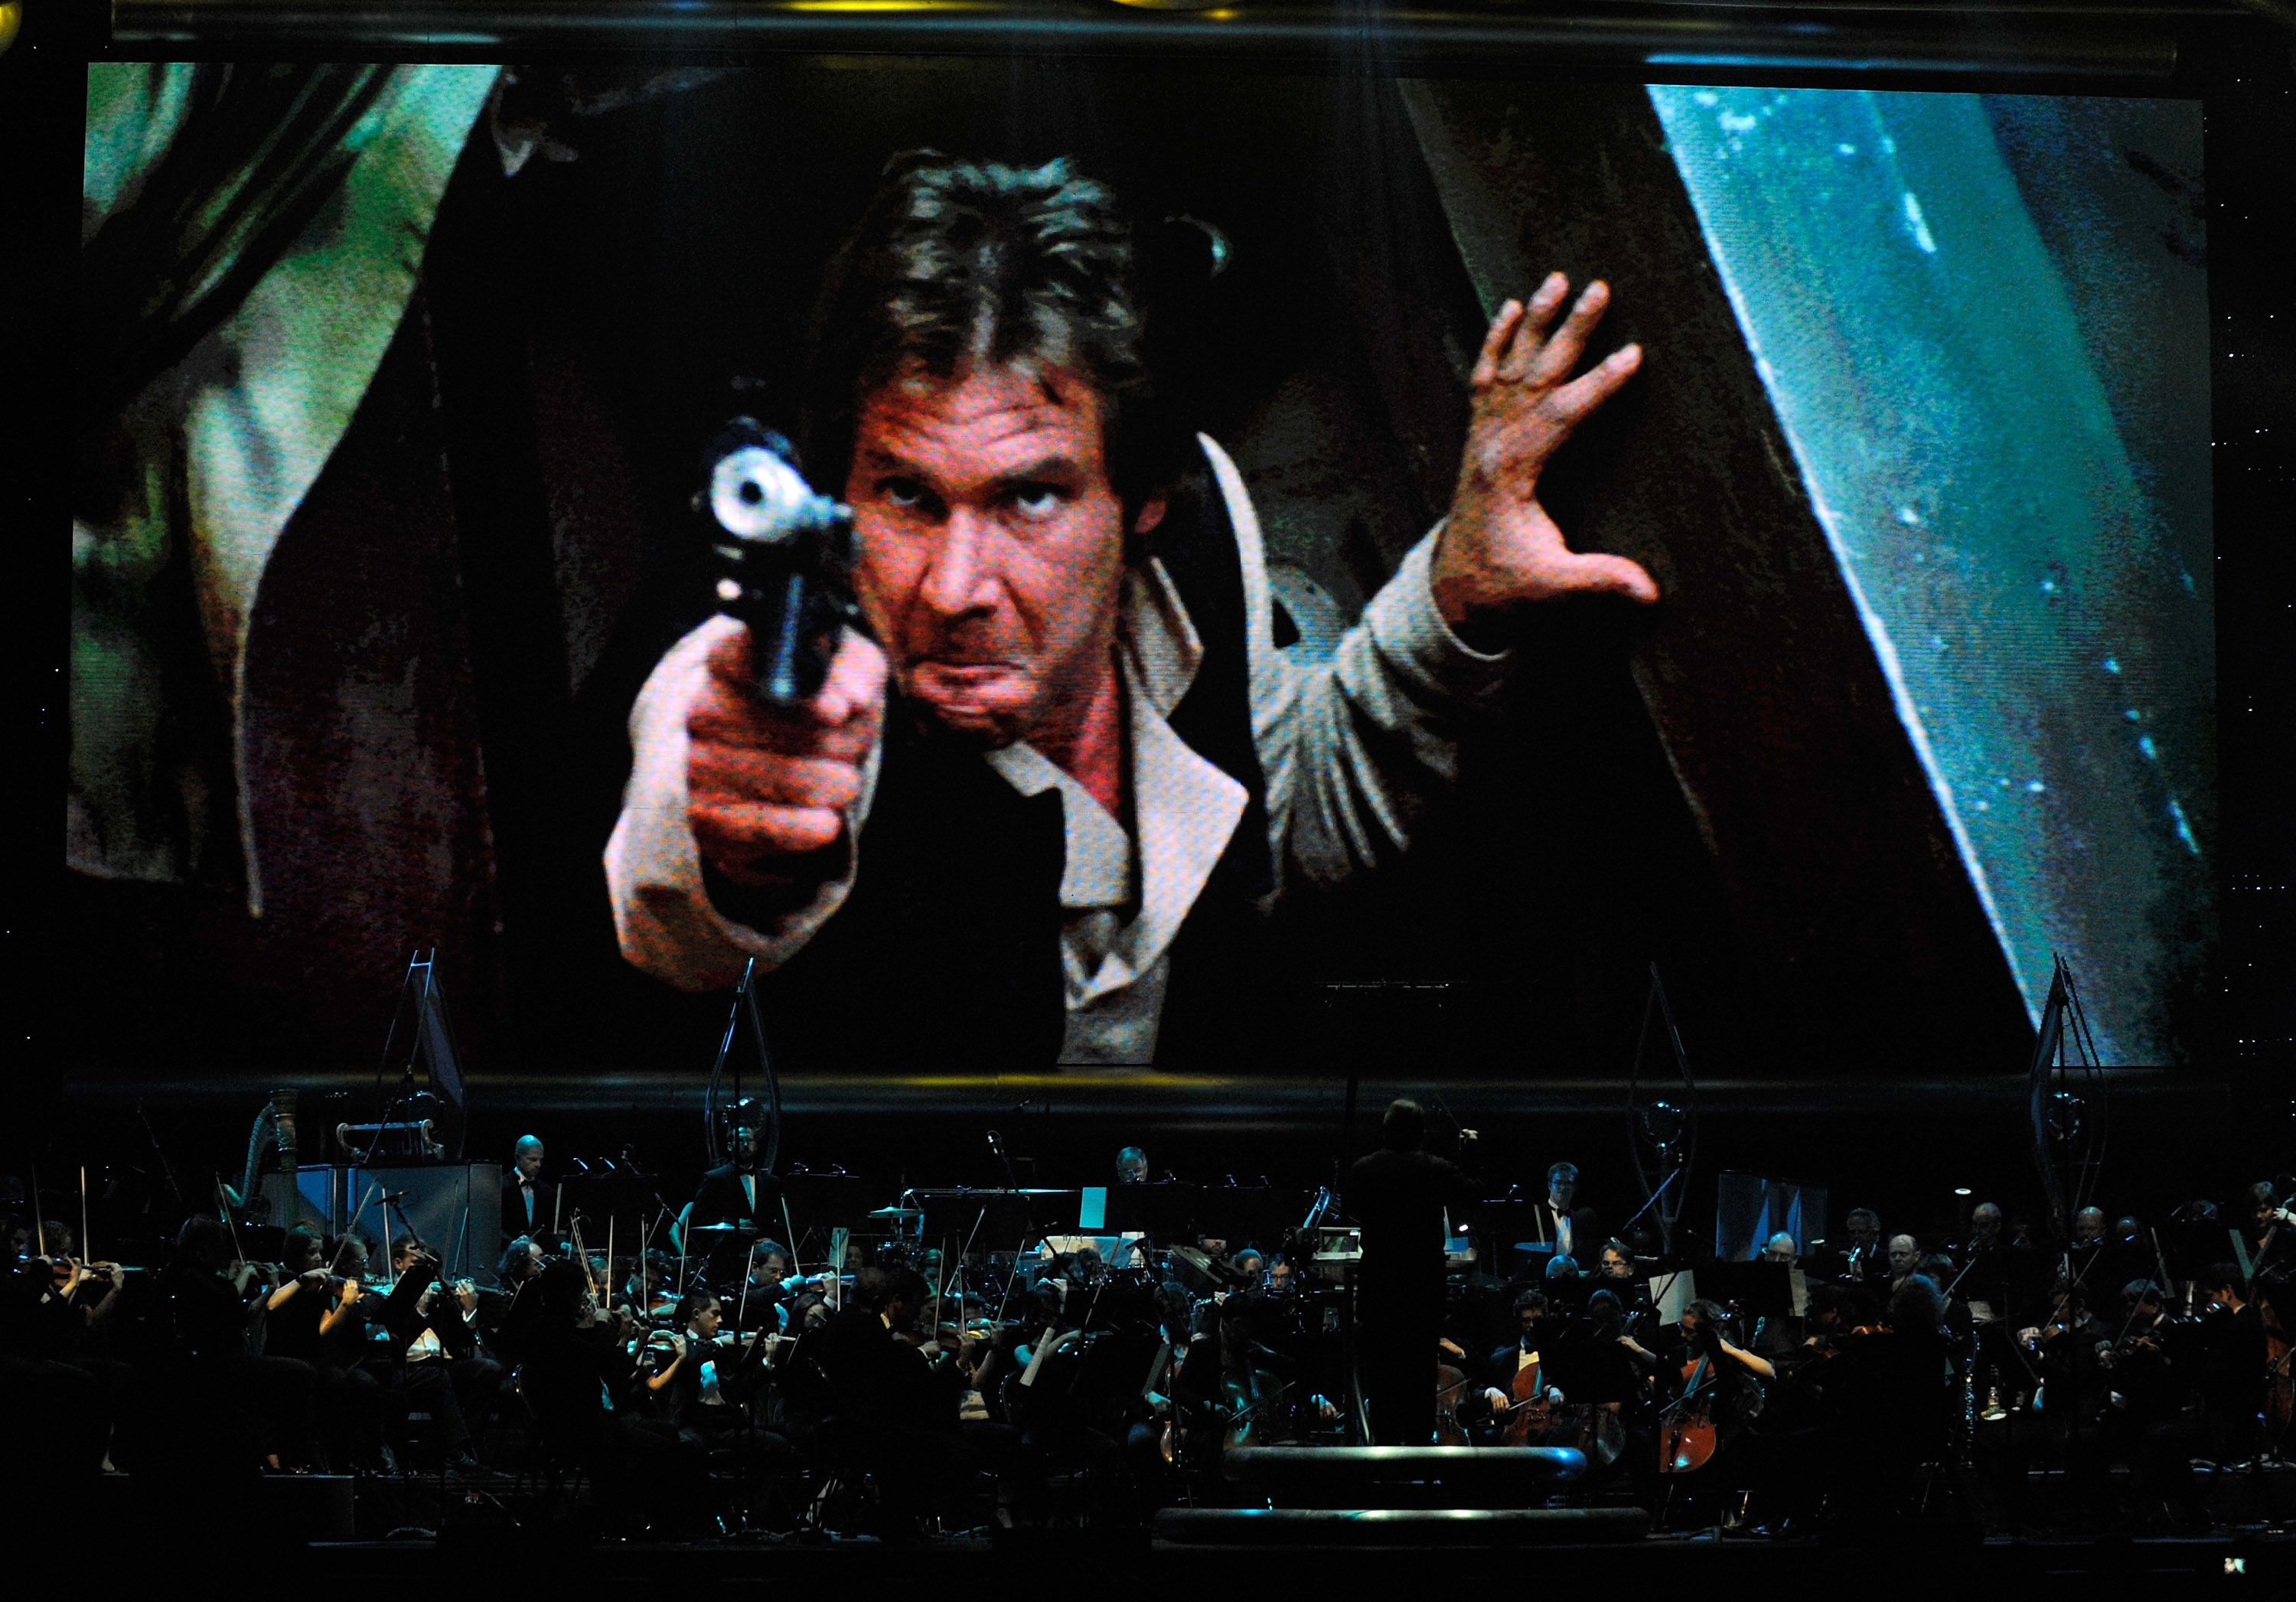 LAS VEGAS - MAY 29:  Actor Harrison Ford's Han Solo character from 'Star Wars Episode VI: Return of the Jedi' is shown on screen while musicians perform during 'Star Wars: In Concert' at the Orleans Arena May 29, 2010 in Las Vegas, Nevada. The traveling production features a full symphony orchestra and choir playing music from all six of John Williams' Star Wars scores synchronized with footage from the films displayed on a three-story-tall, HD LED screen.  (Photo by Ethan Miller/Getty Images)